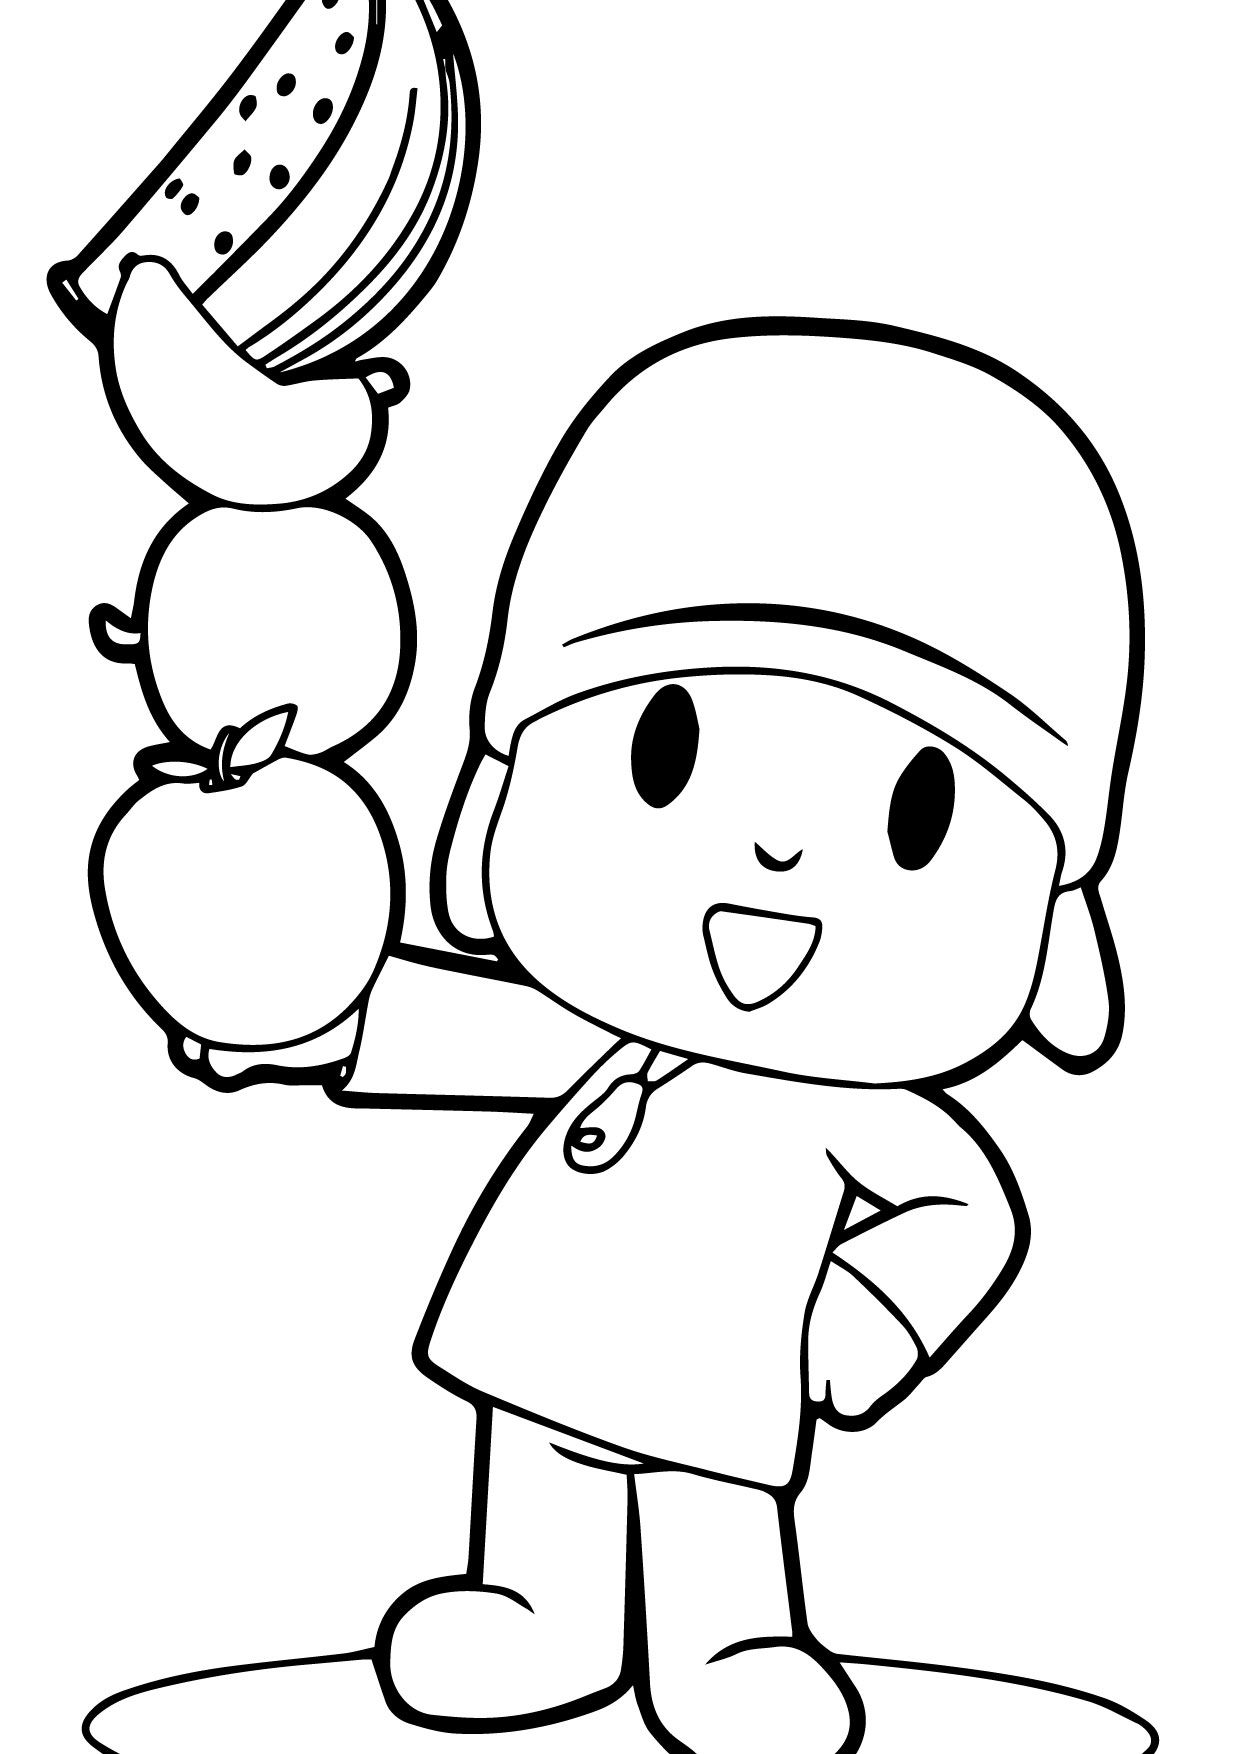 Nice Coloring Page 08 09 01